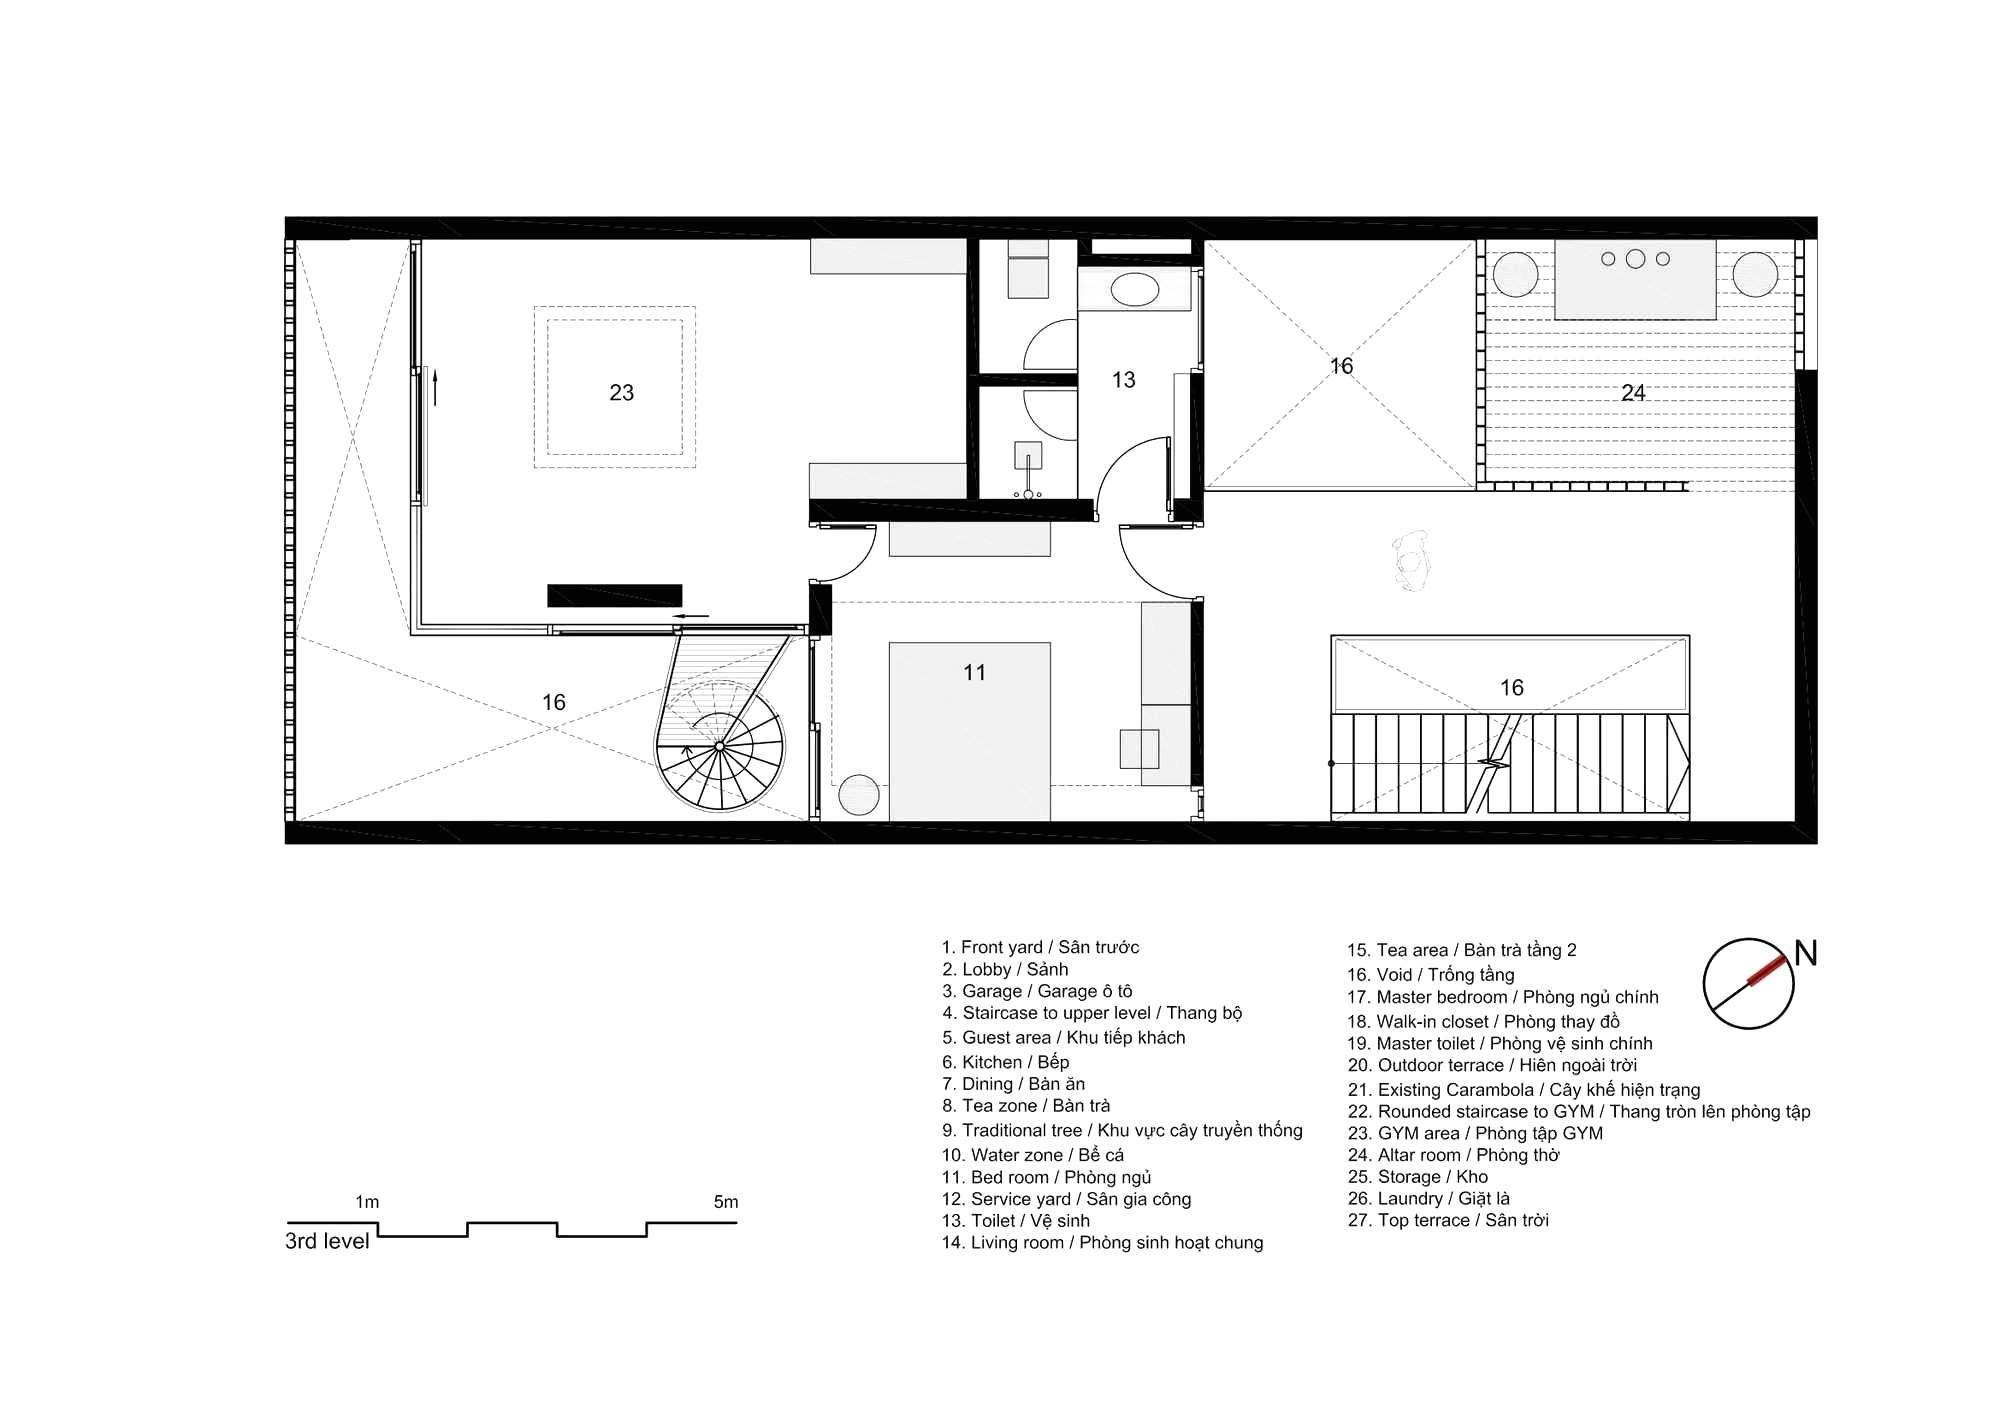 house plans with a view of the water house floor plan designer awesome simple kitchen floor plans 0d of house plans with a view of the water